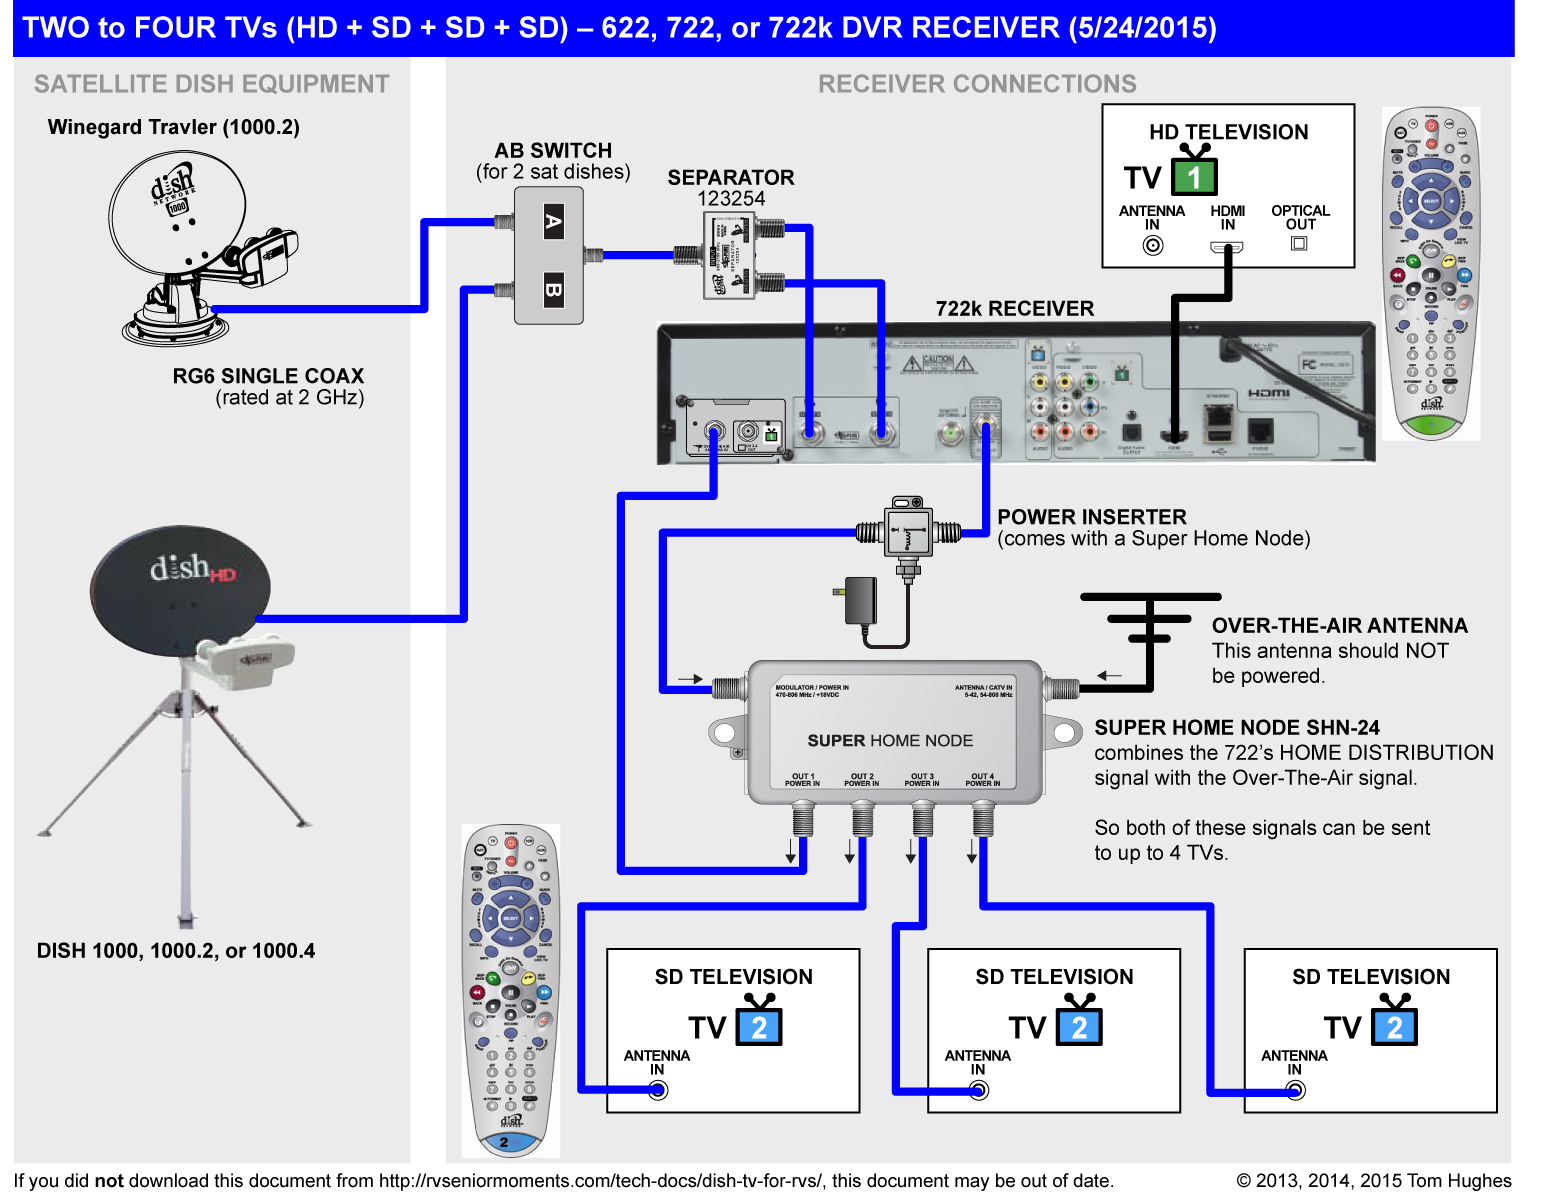 Dishtv Wiring Diagram - Wiring Diagram Data Oreo - How To Connect 2 Tvs To One Dish Network Receiver Wiring Diagram